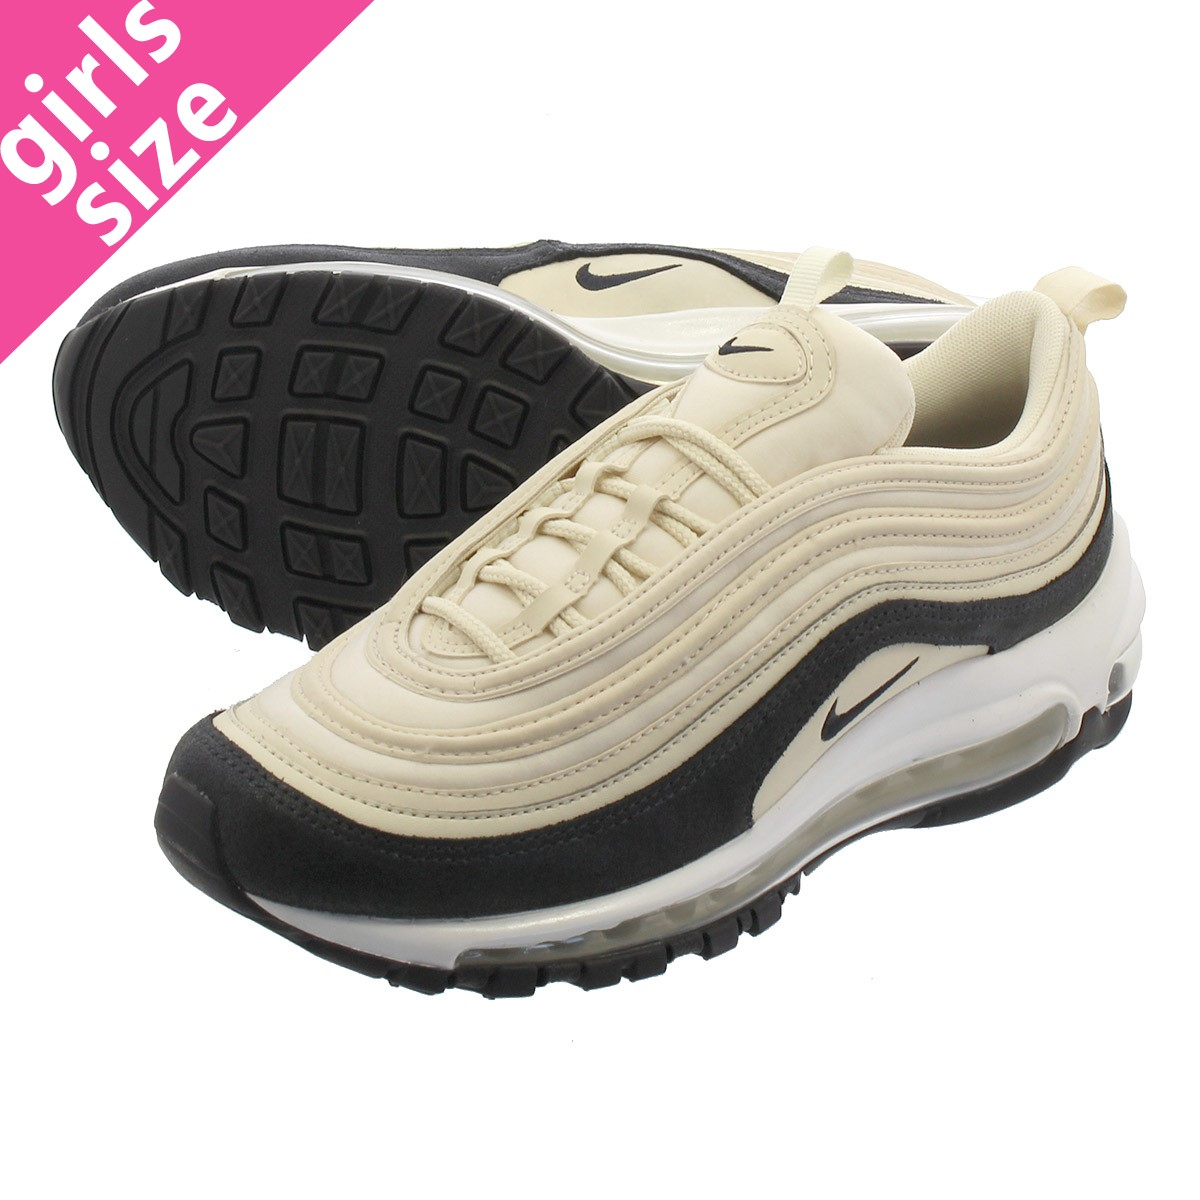 5adae99993 NIKE WMNS AIR MAX 97 PREMIUM Nike women Air Max 97 premium LIGHT CREAM/OIL  ...